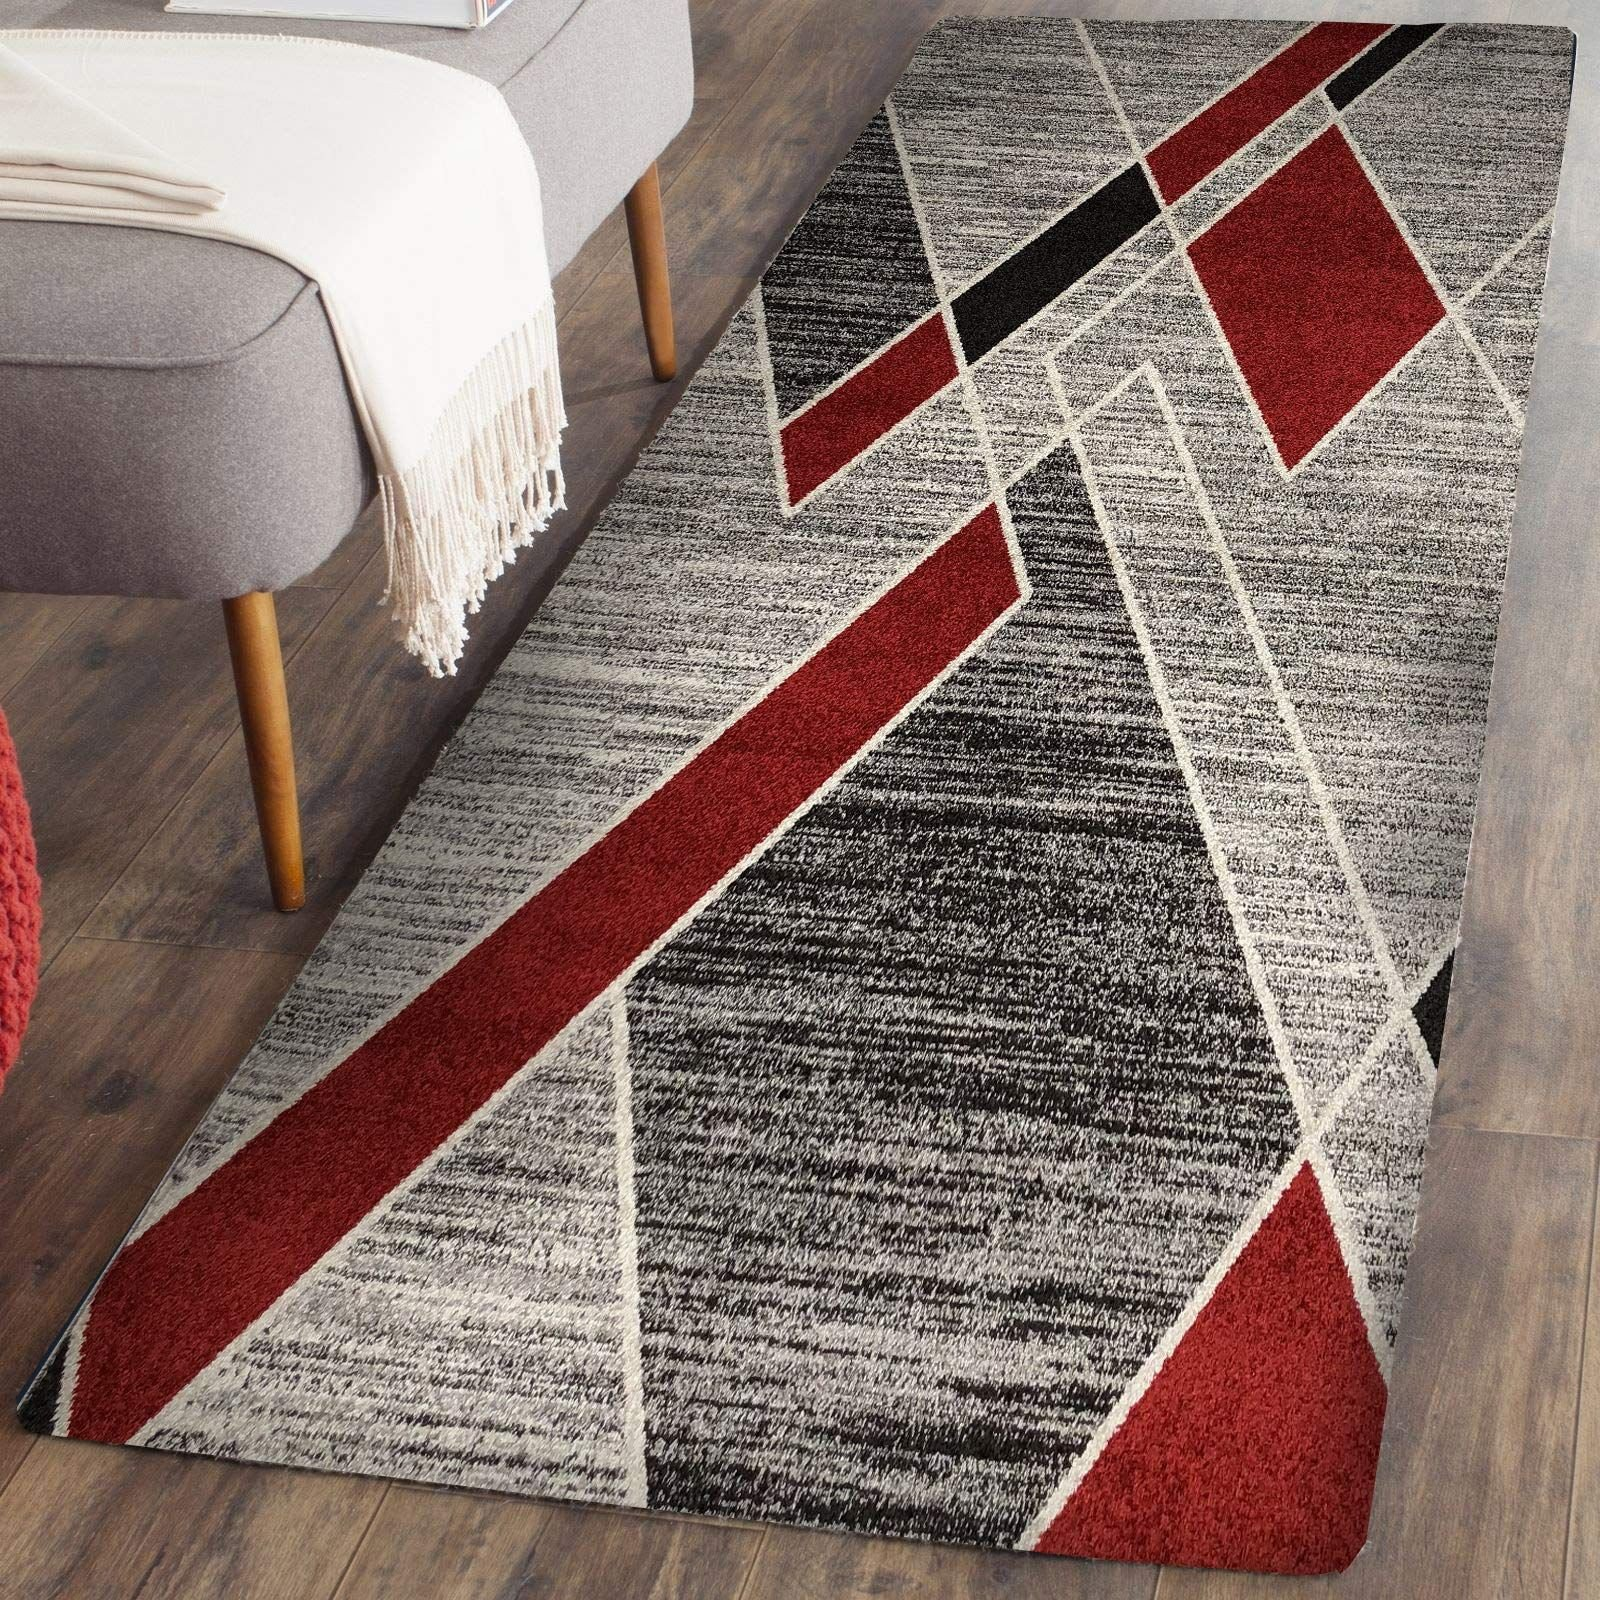 Red Rugs for Bedroom Best Of Prestige Decor area Rugs 2x5 Living Room Rug Carpet Grey Red